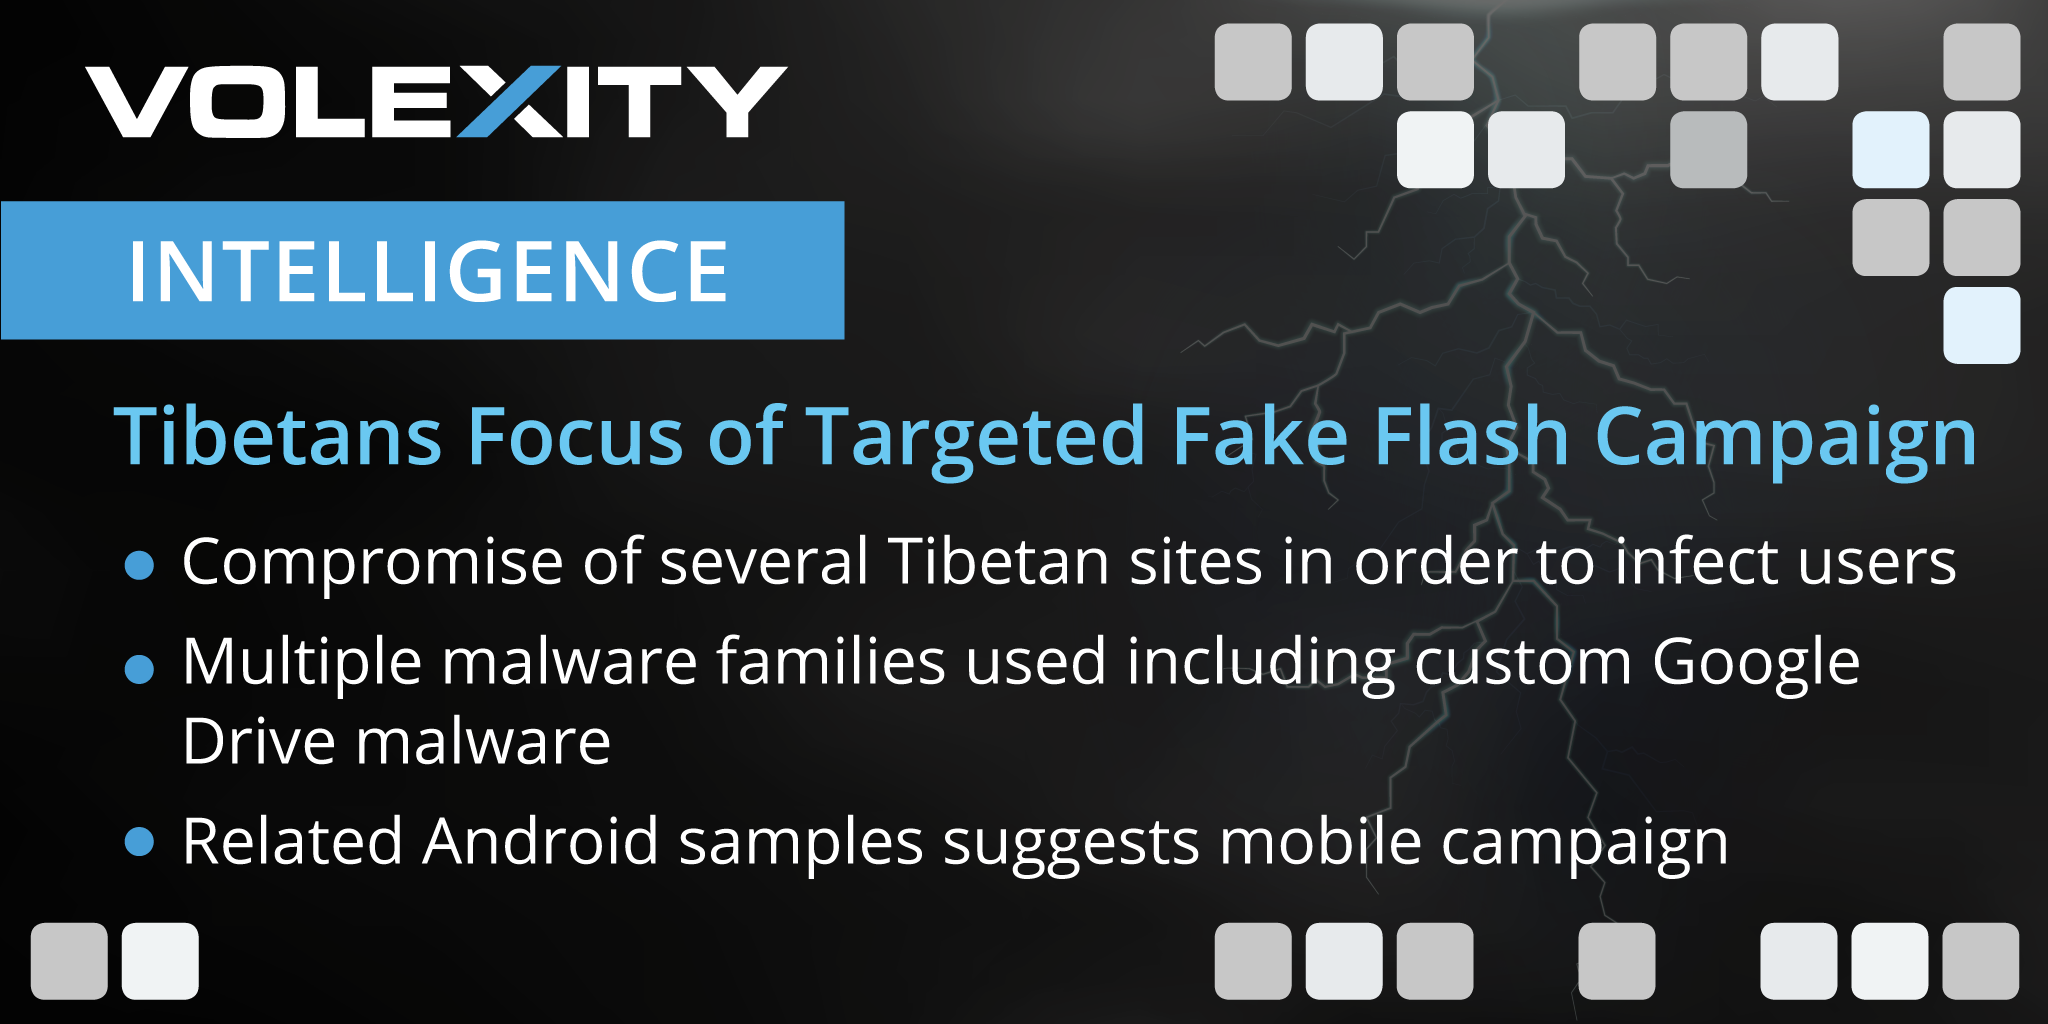 Storm Cloud Unleashed: Tibetan Focus of Highly Targeted Fake Flash Campaign